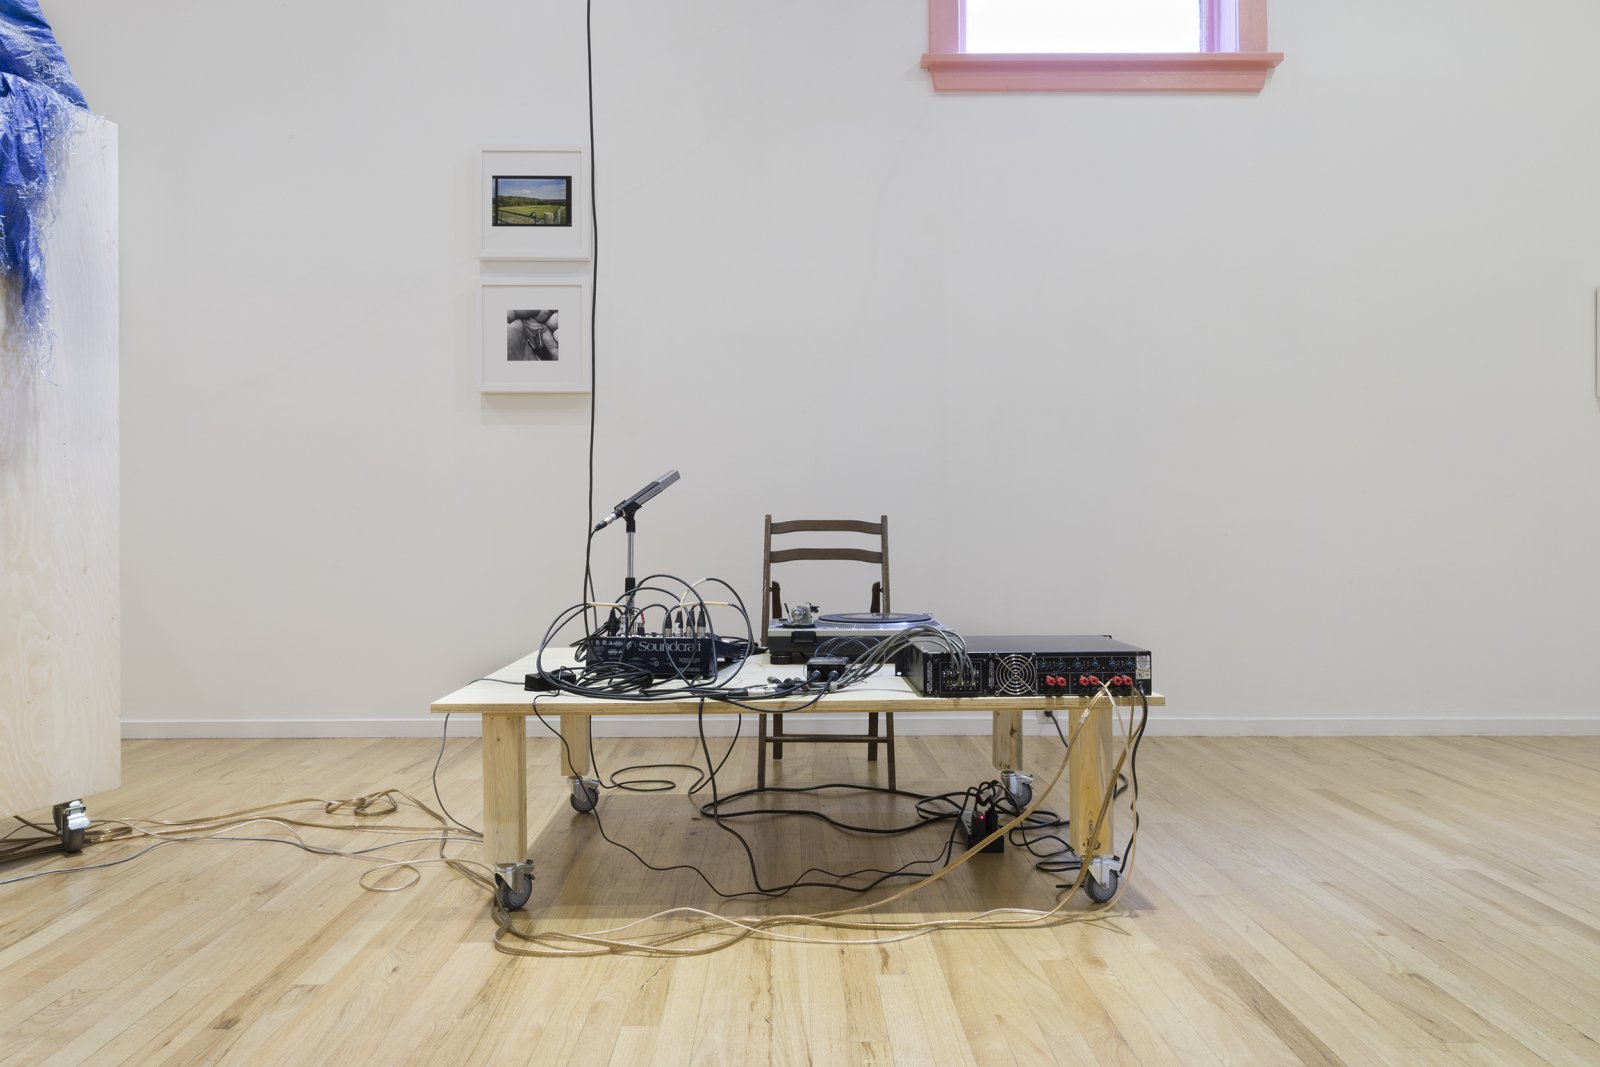 Duane Linklater,apparatus for the dissemination of Indigenous ideas and sounds into the air, 2017,tripod, radio transmitter, hand dyed snowshoes, tarpulin, fabric, string, stone, tape, speaker, paint, wiring, dimensions variable. Installation view,apparatus for the circulation of Indigenous ideas and sounds into the air, Western Front, Vancouver, 2017